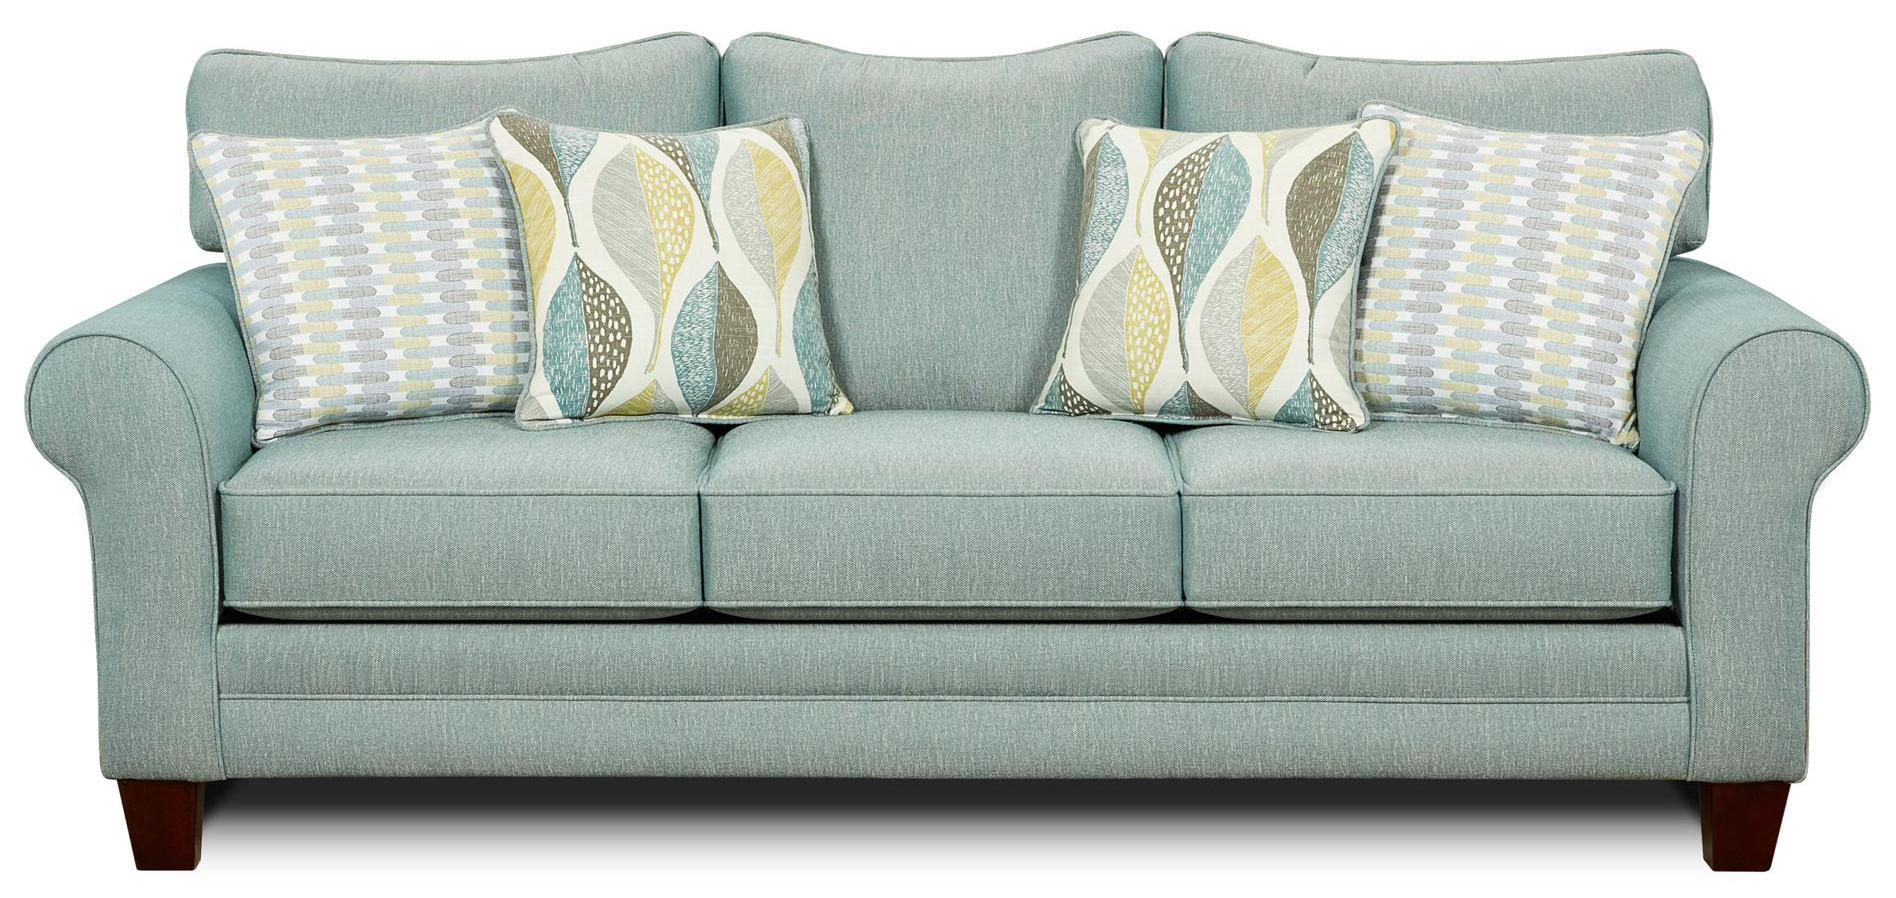 Fusion Furniture 1140 Sleeper Sofa - Item Number: 1144Decade Aqua